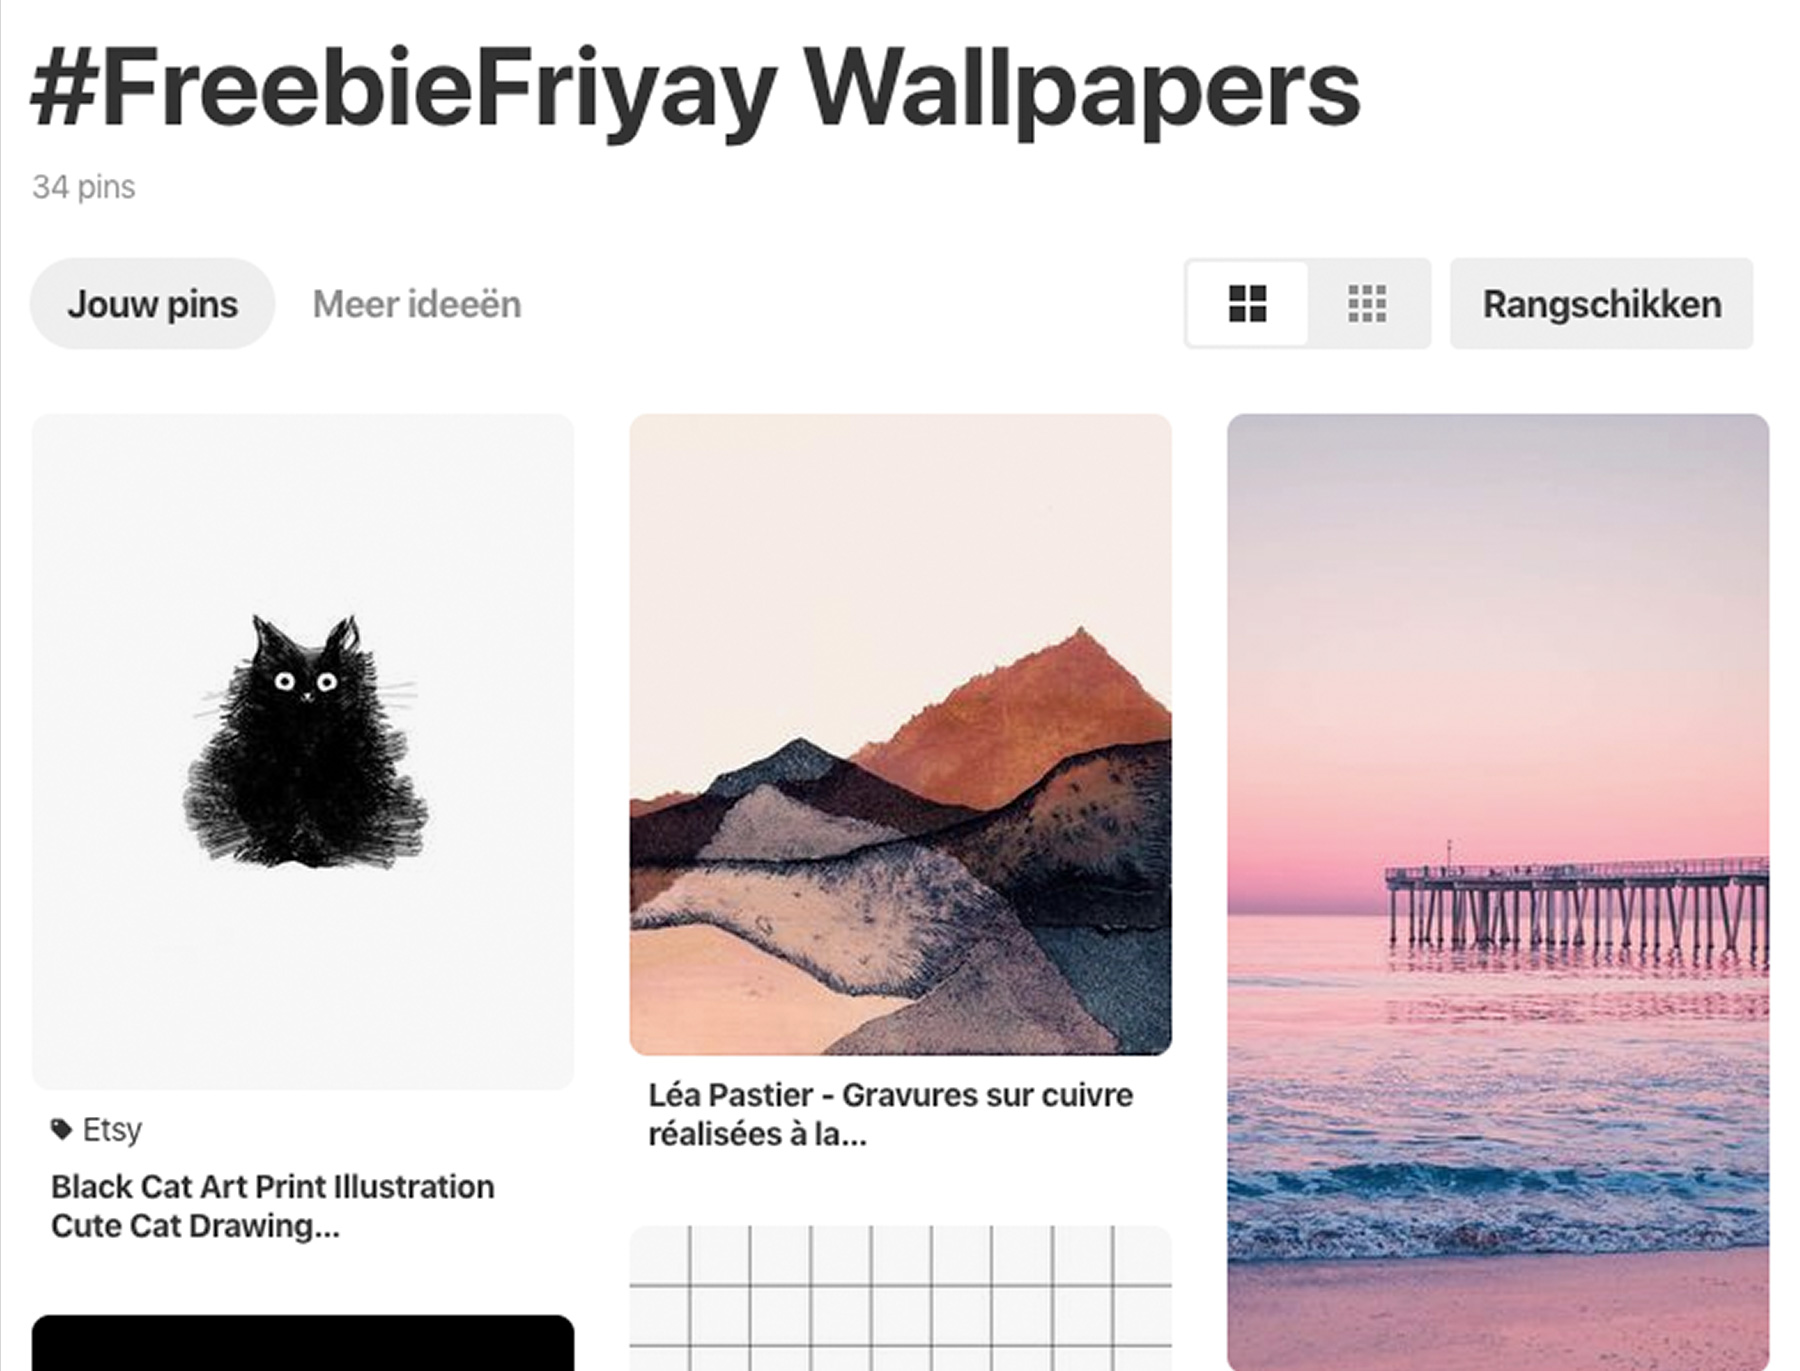 FreebieFriyay week 51 pinterest